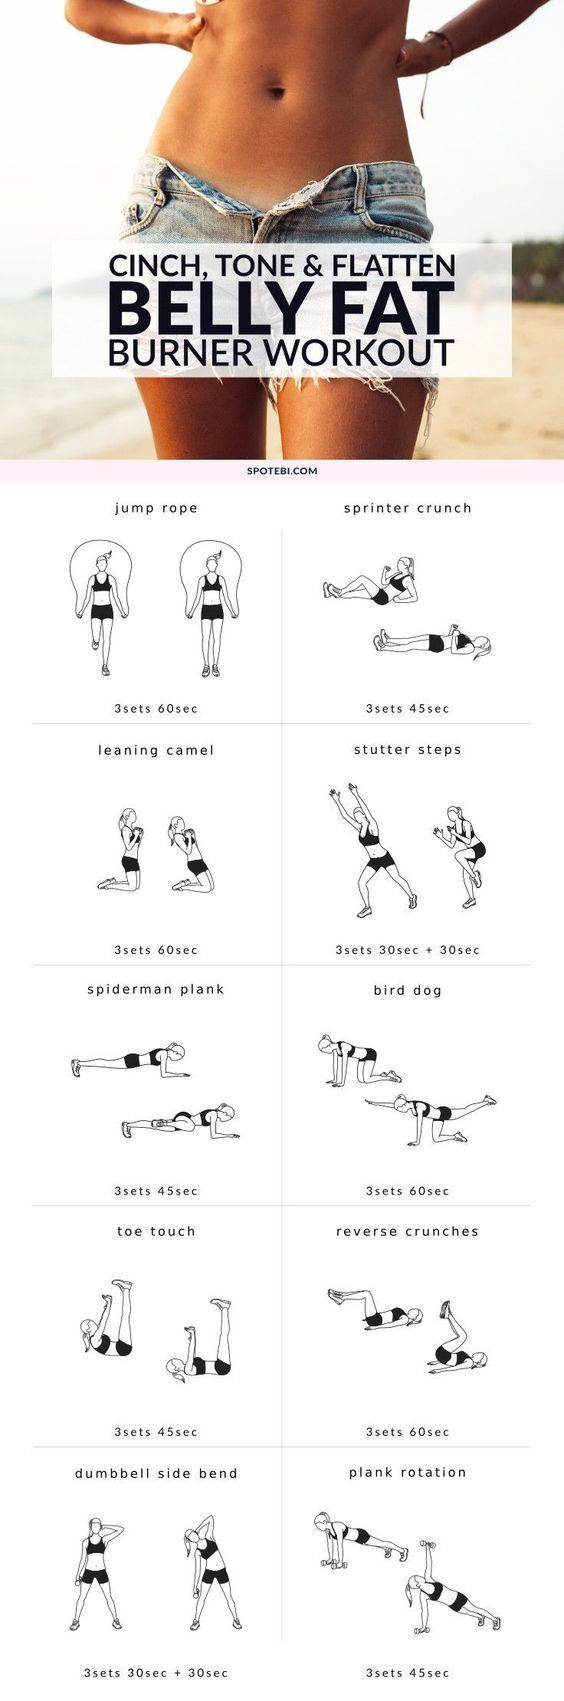 Flatten your abs and blast calories with these 10 moves! A belly fat burner workout to tone up your tummy, strengthen your core and get rid of love handles. #fitness #workout